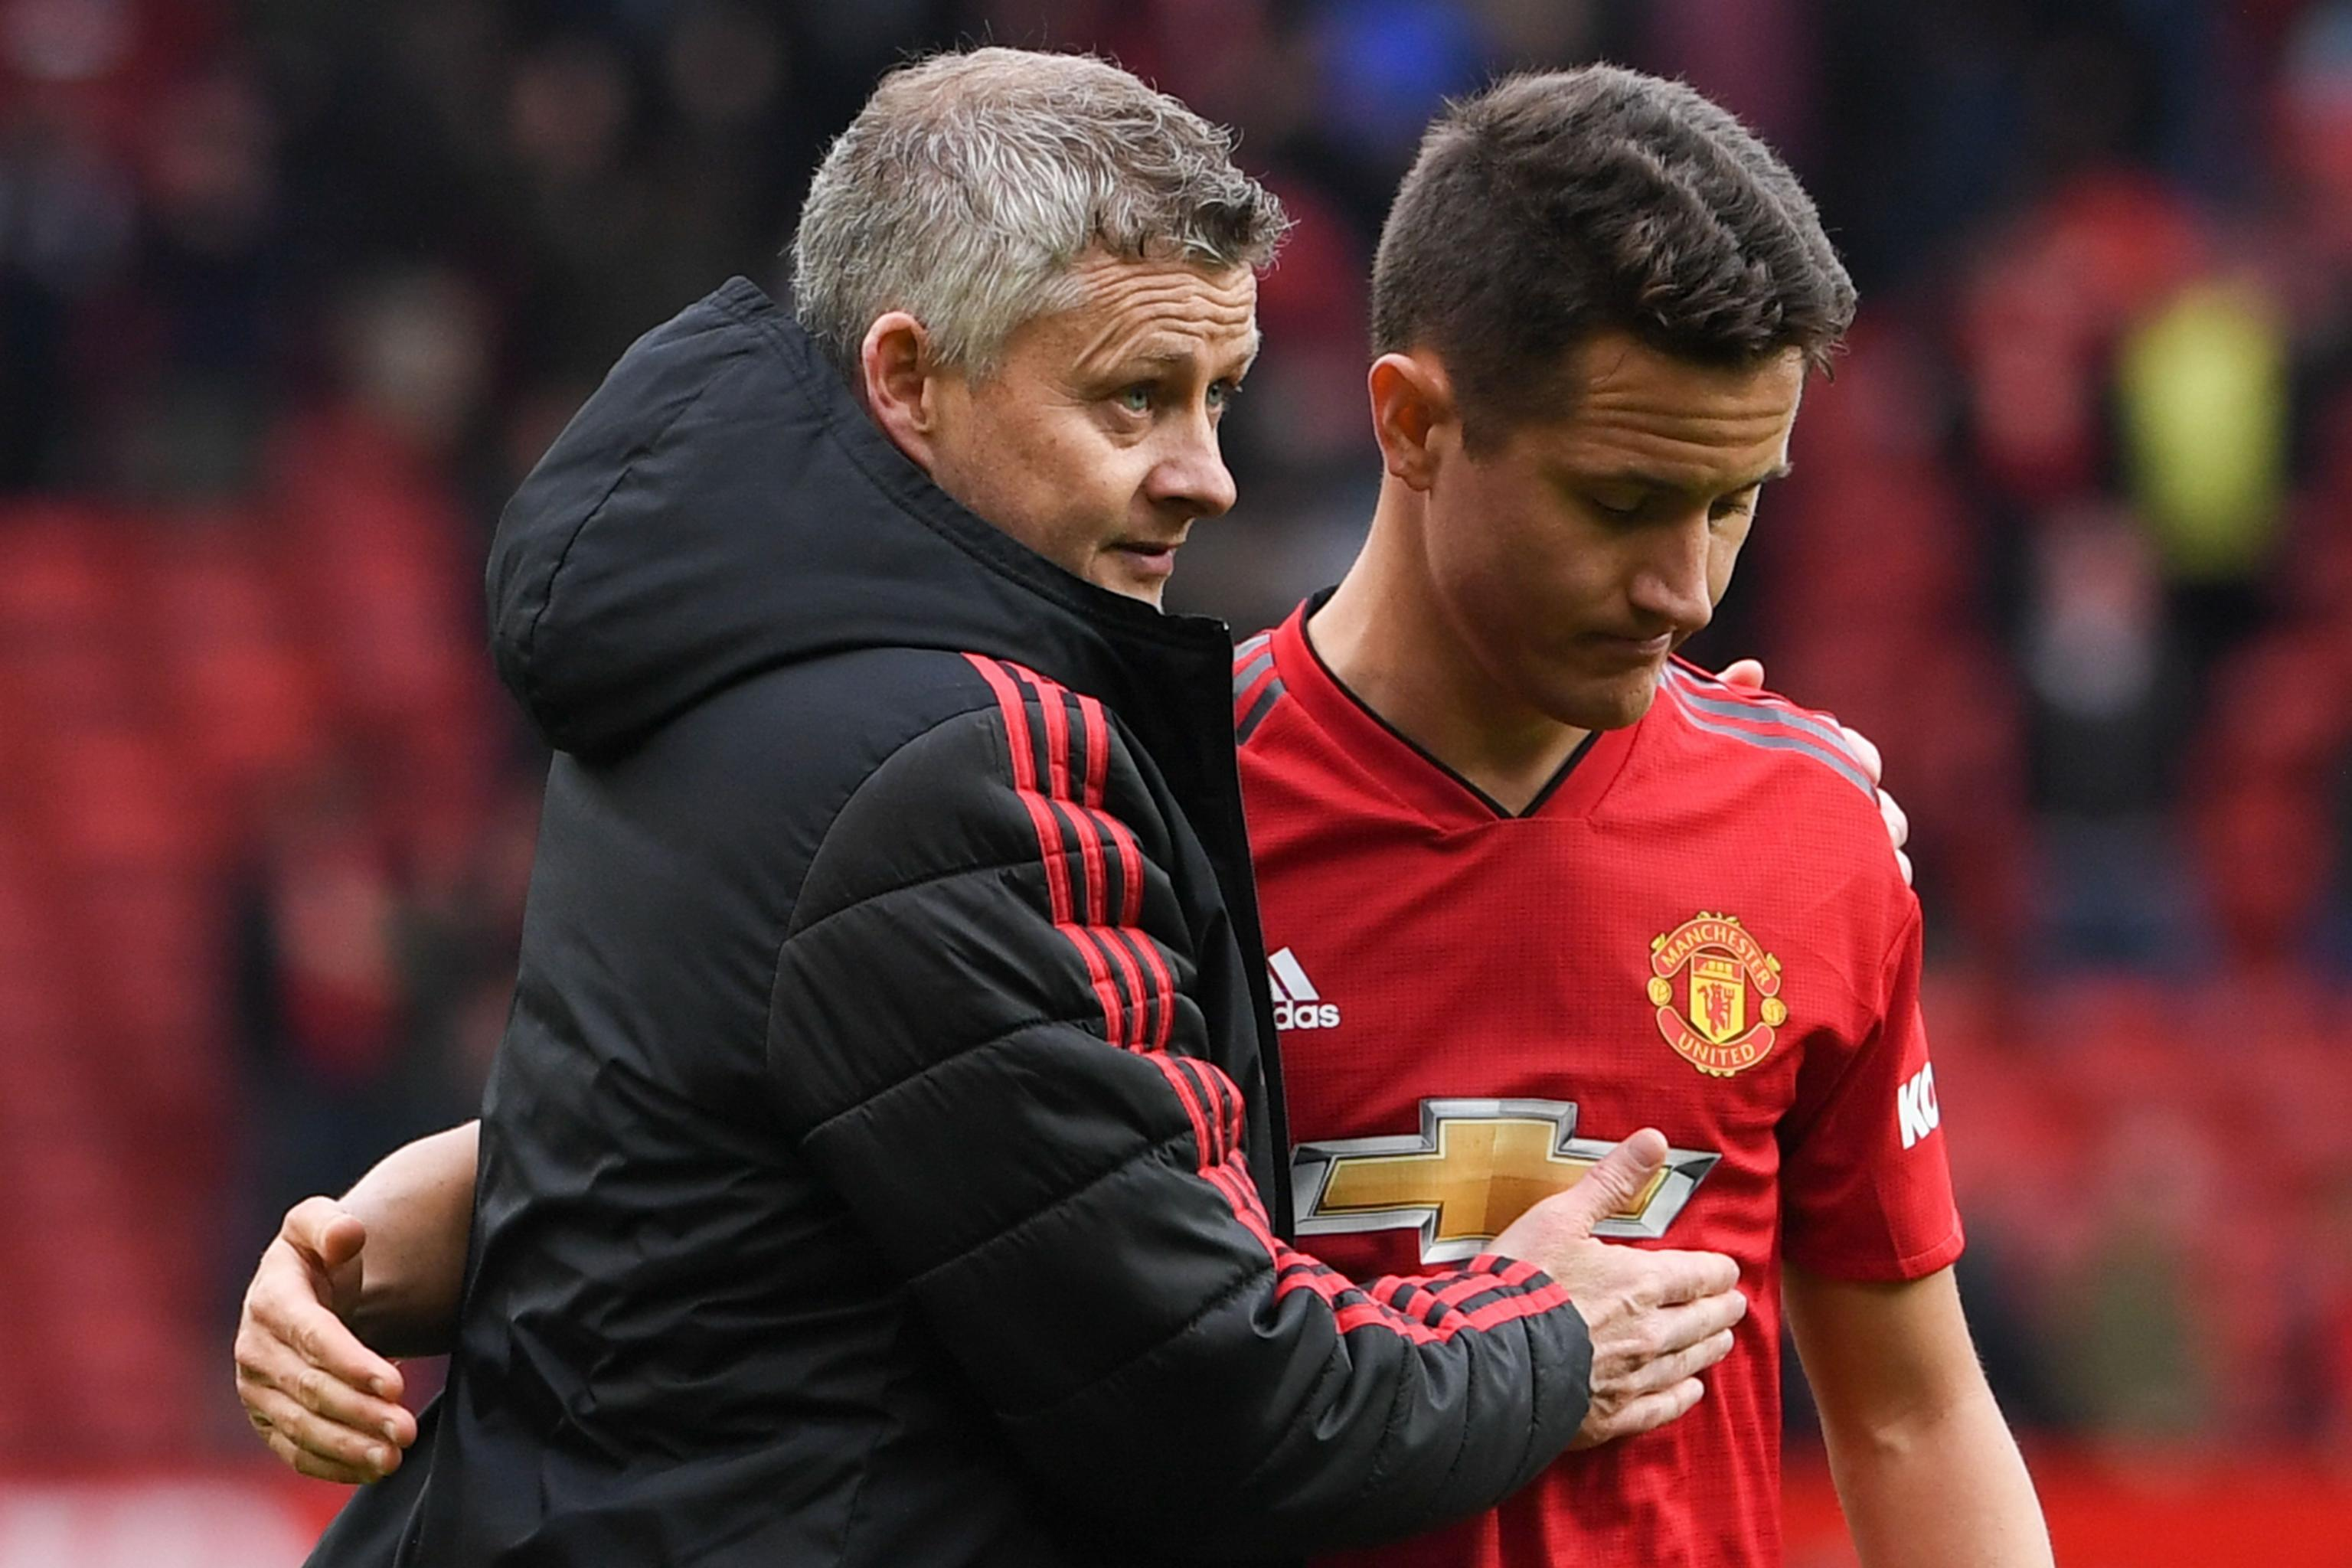 ander herrera manchester united players should all feel disappointed bleacher report latest news videos and highlights ander herrera manchester united